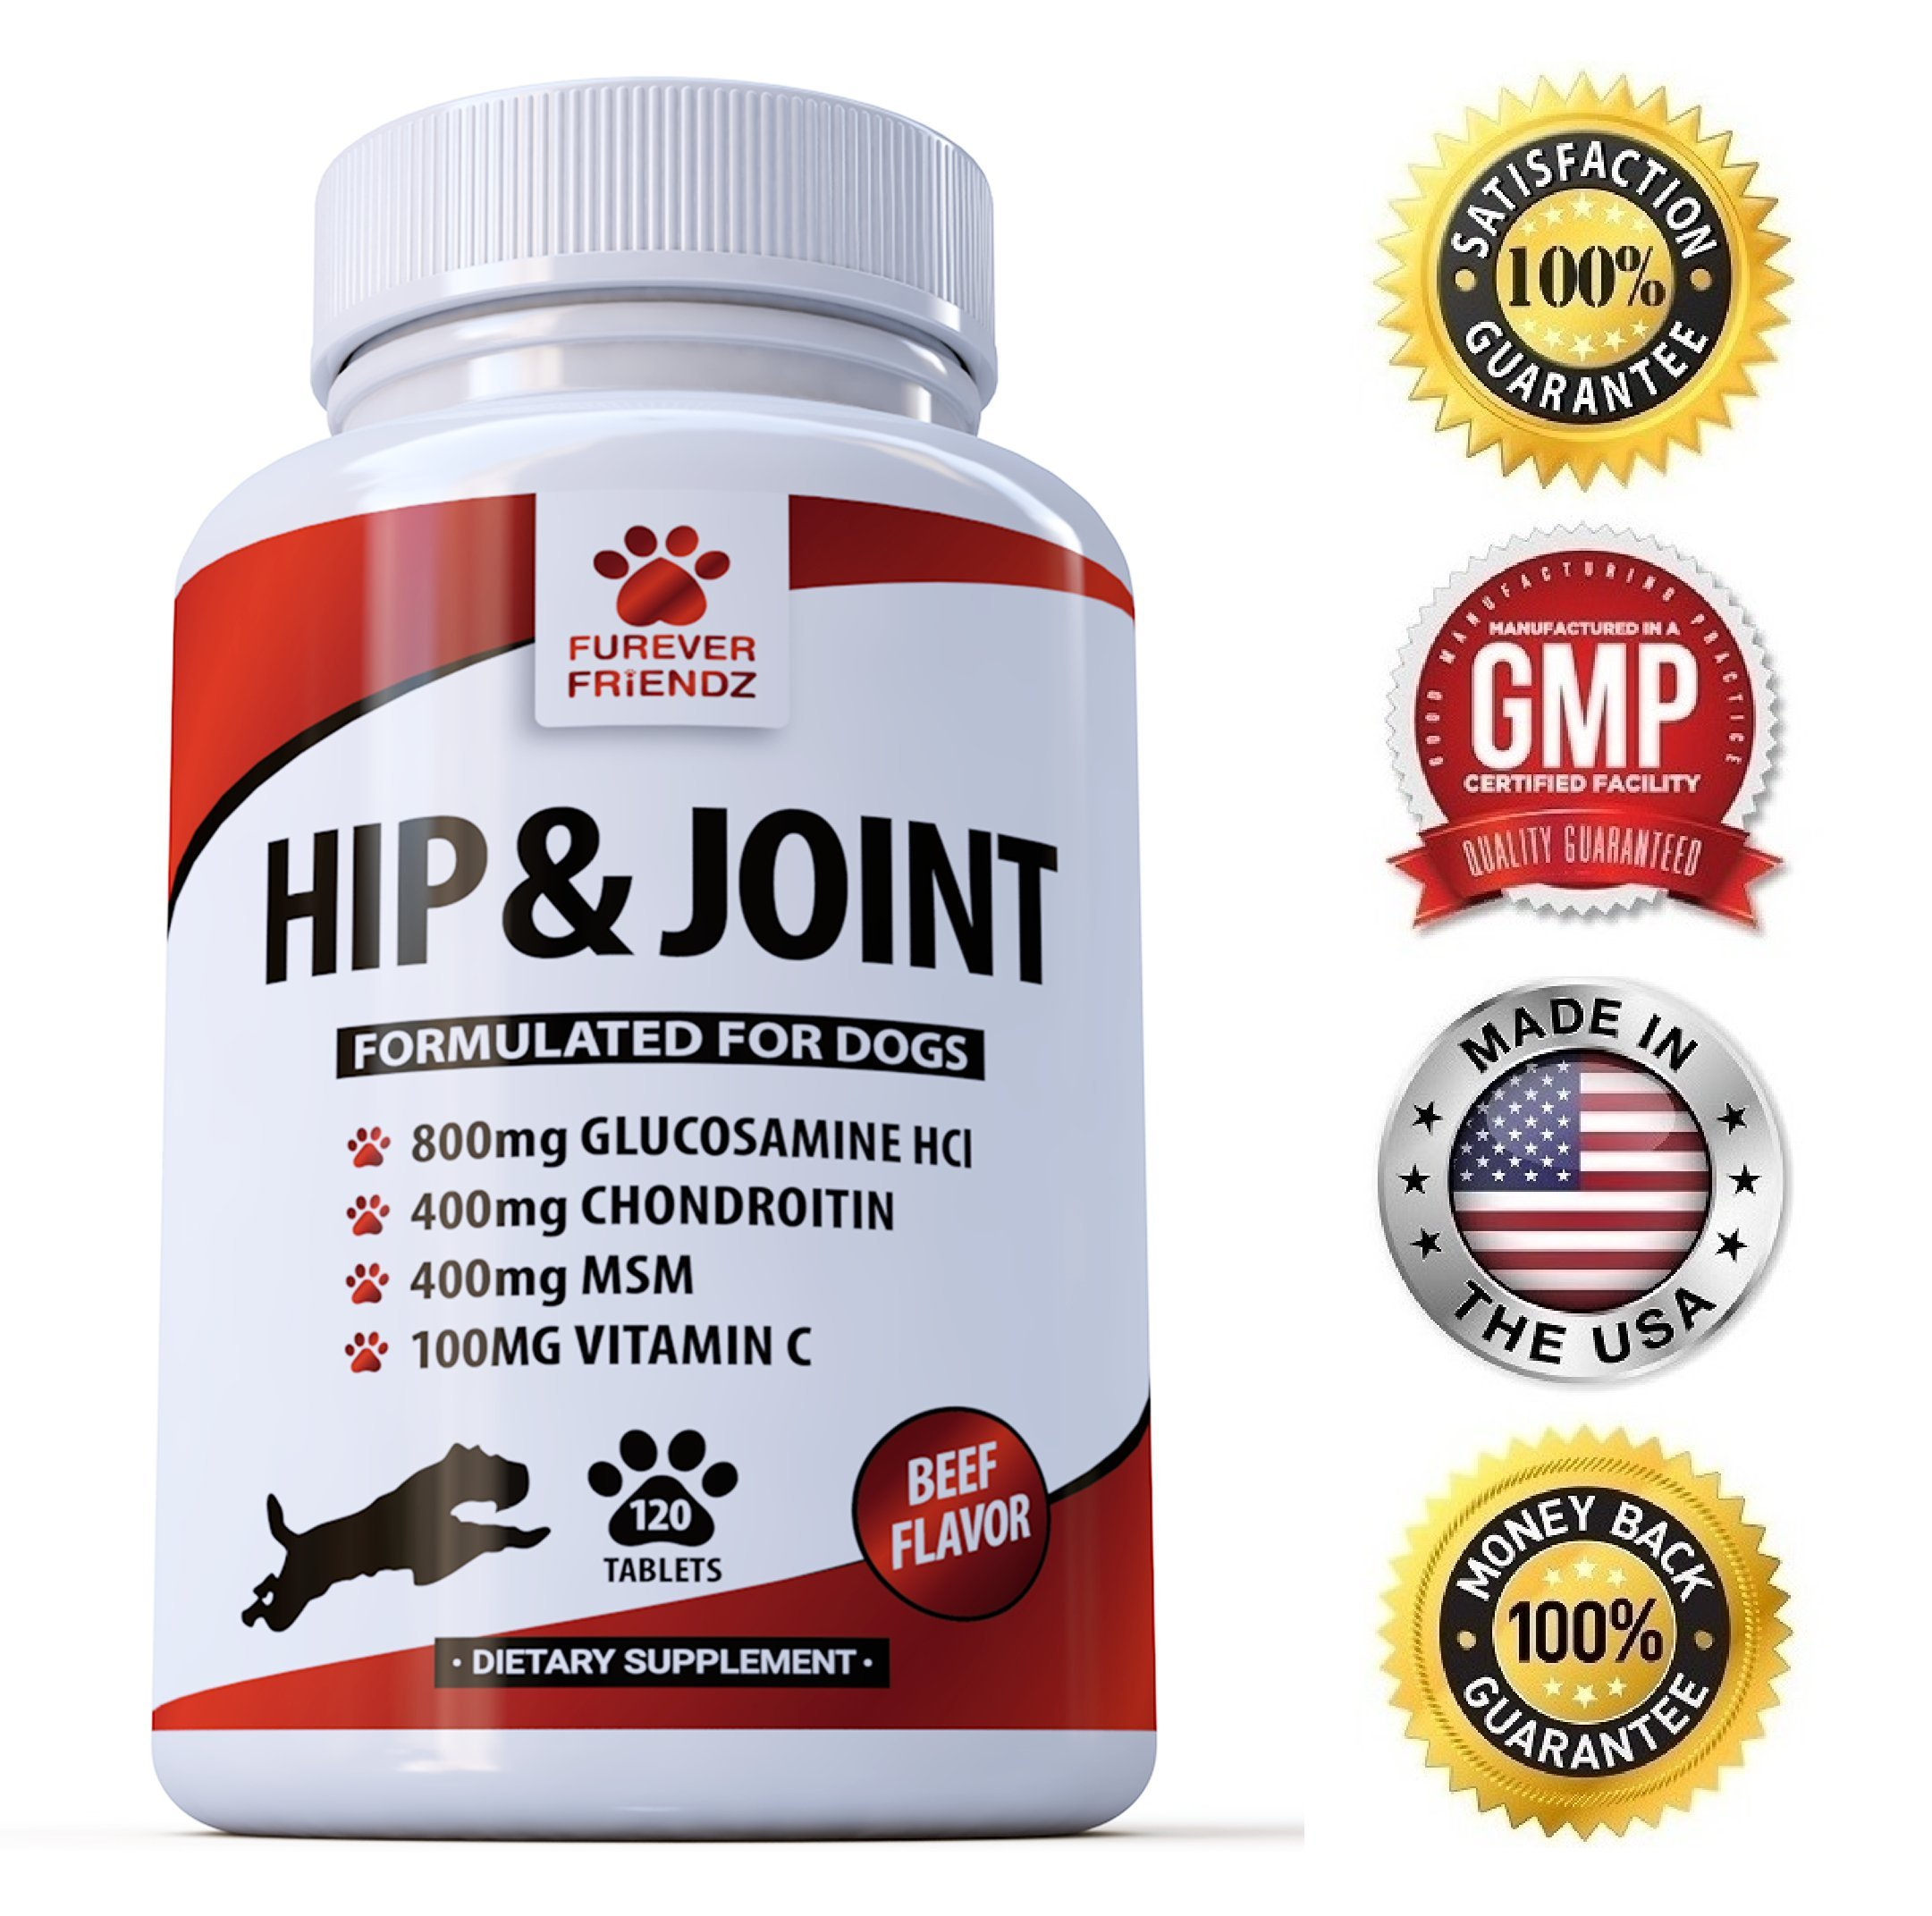 Furever Friendz Advanced Hip And Joint Support - Glucosamine Chondroitin MSM For Dogs - Chewable Tablets With Vitamins C & E - Pain Relief Medicine Treats For Arthritis & Dysplasia